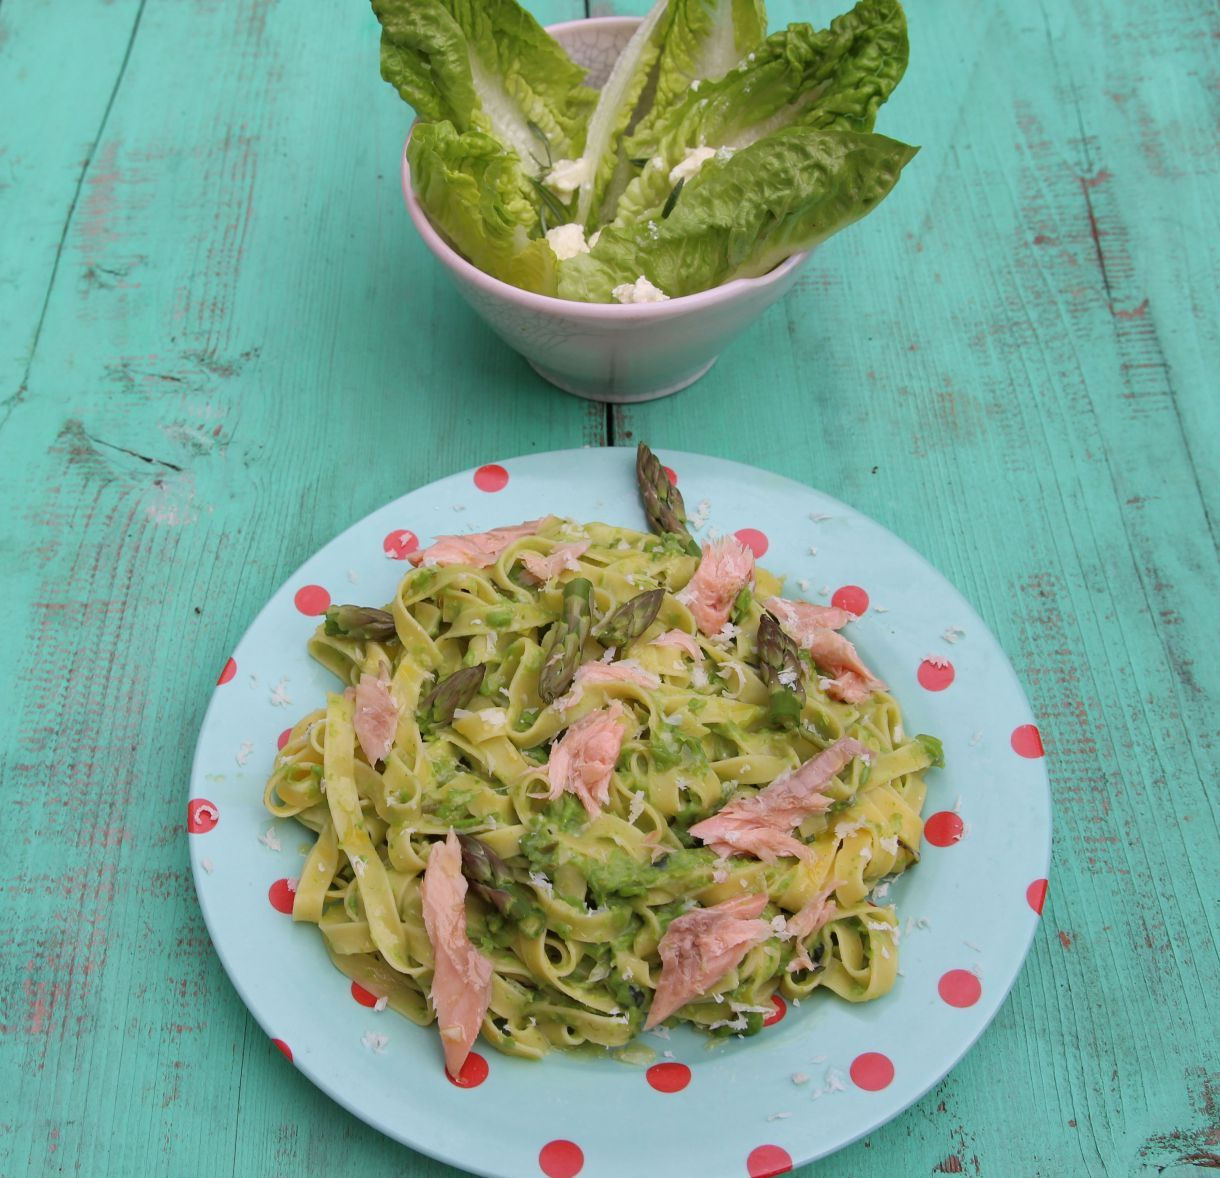 Jamie Oliver 15 Min Küche Jamie Oliver S Fettuccine With Smoked Trout Asparagus And Peas